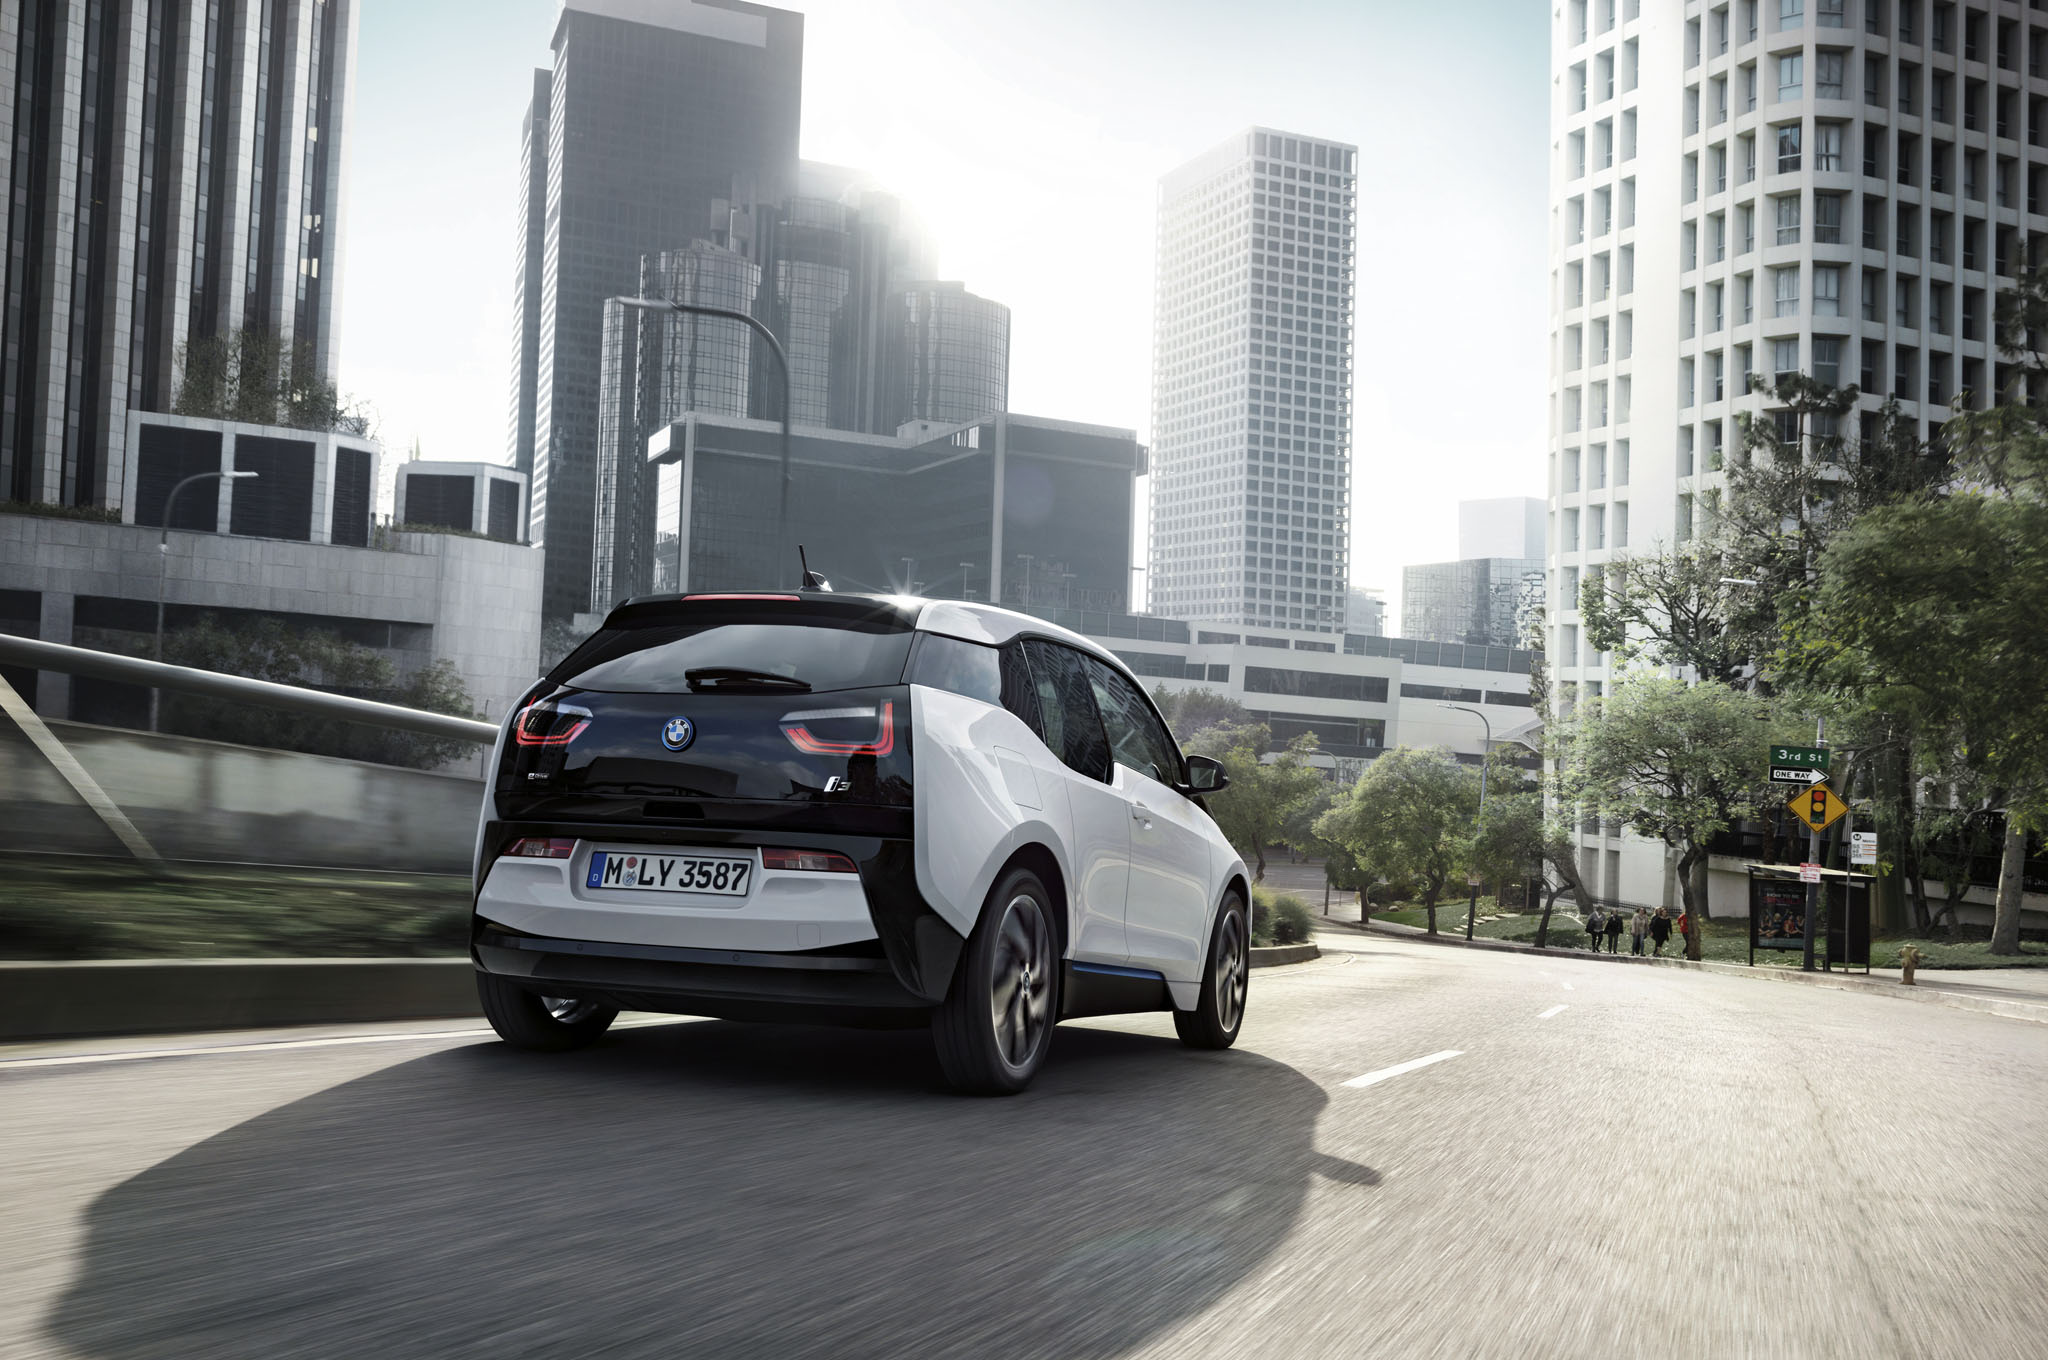 2017 BMW I3 Estimated To Offer 114 Miles On A Single Charge